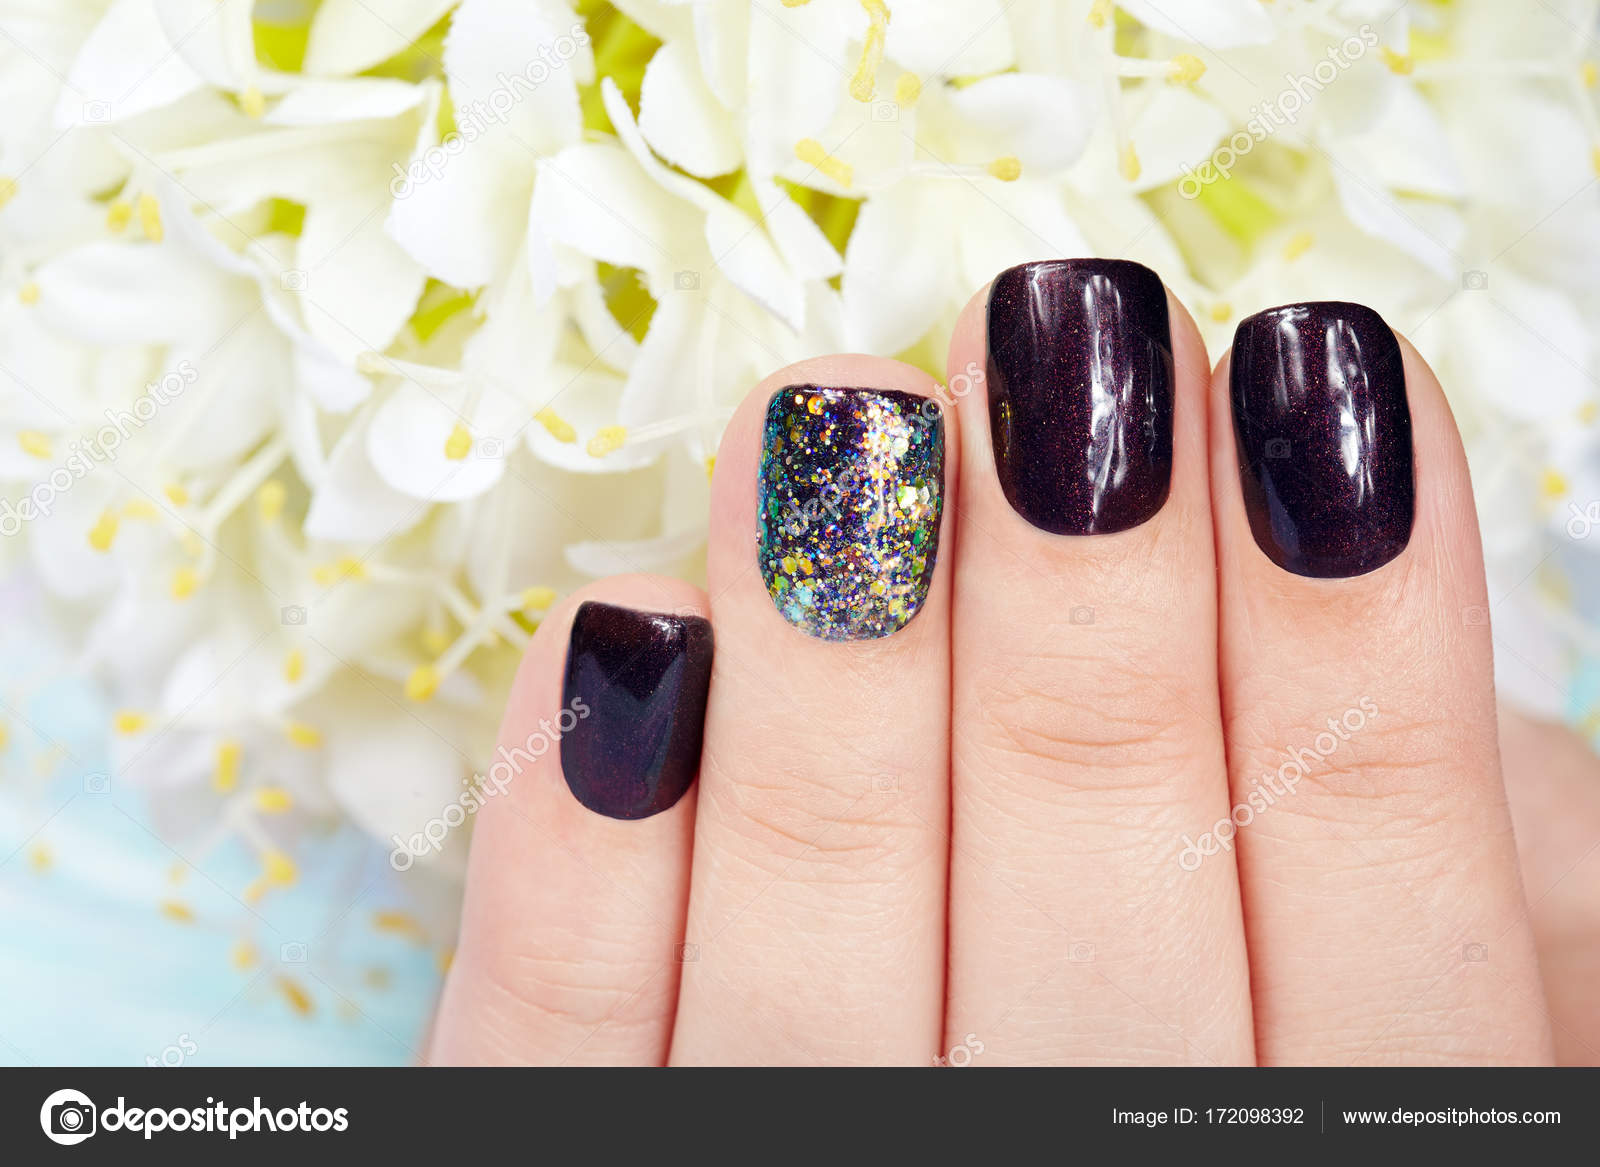 Hand with manicured nails colored with dark purple nail polish ...